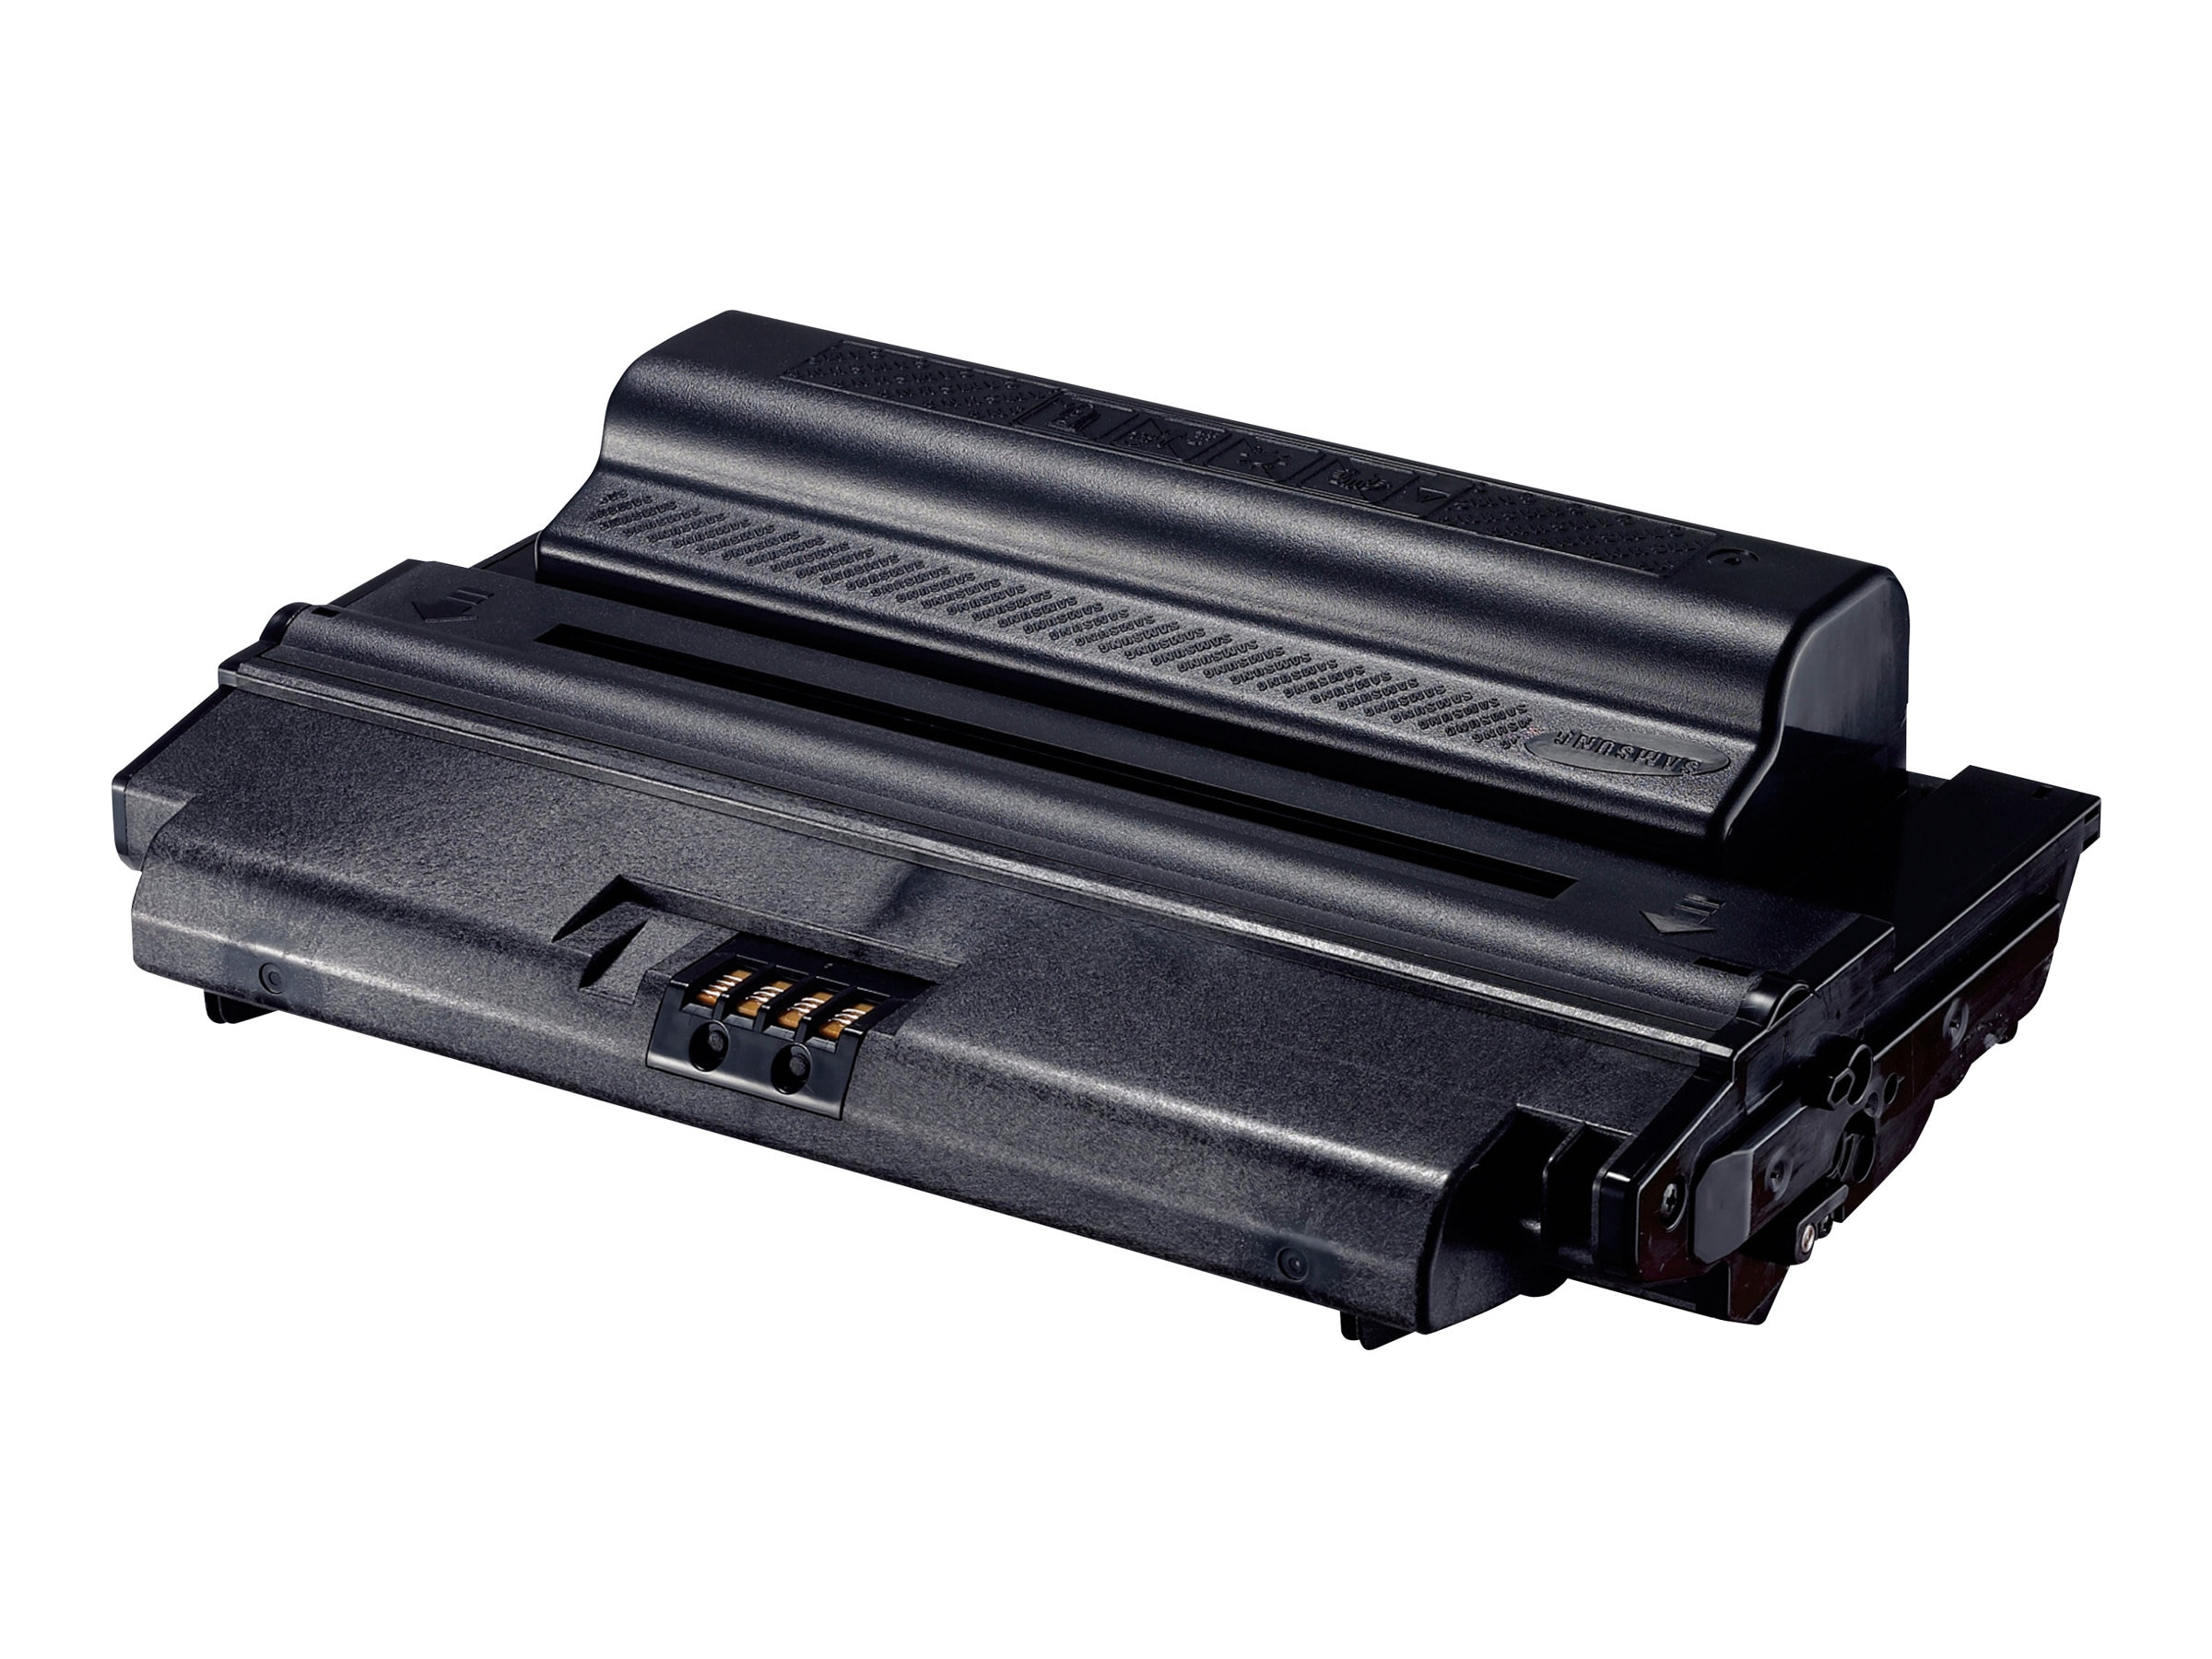 Samsung Black Toner Cartridge for ML-3470 Series Printers, ML-D3470A